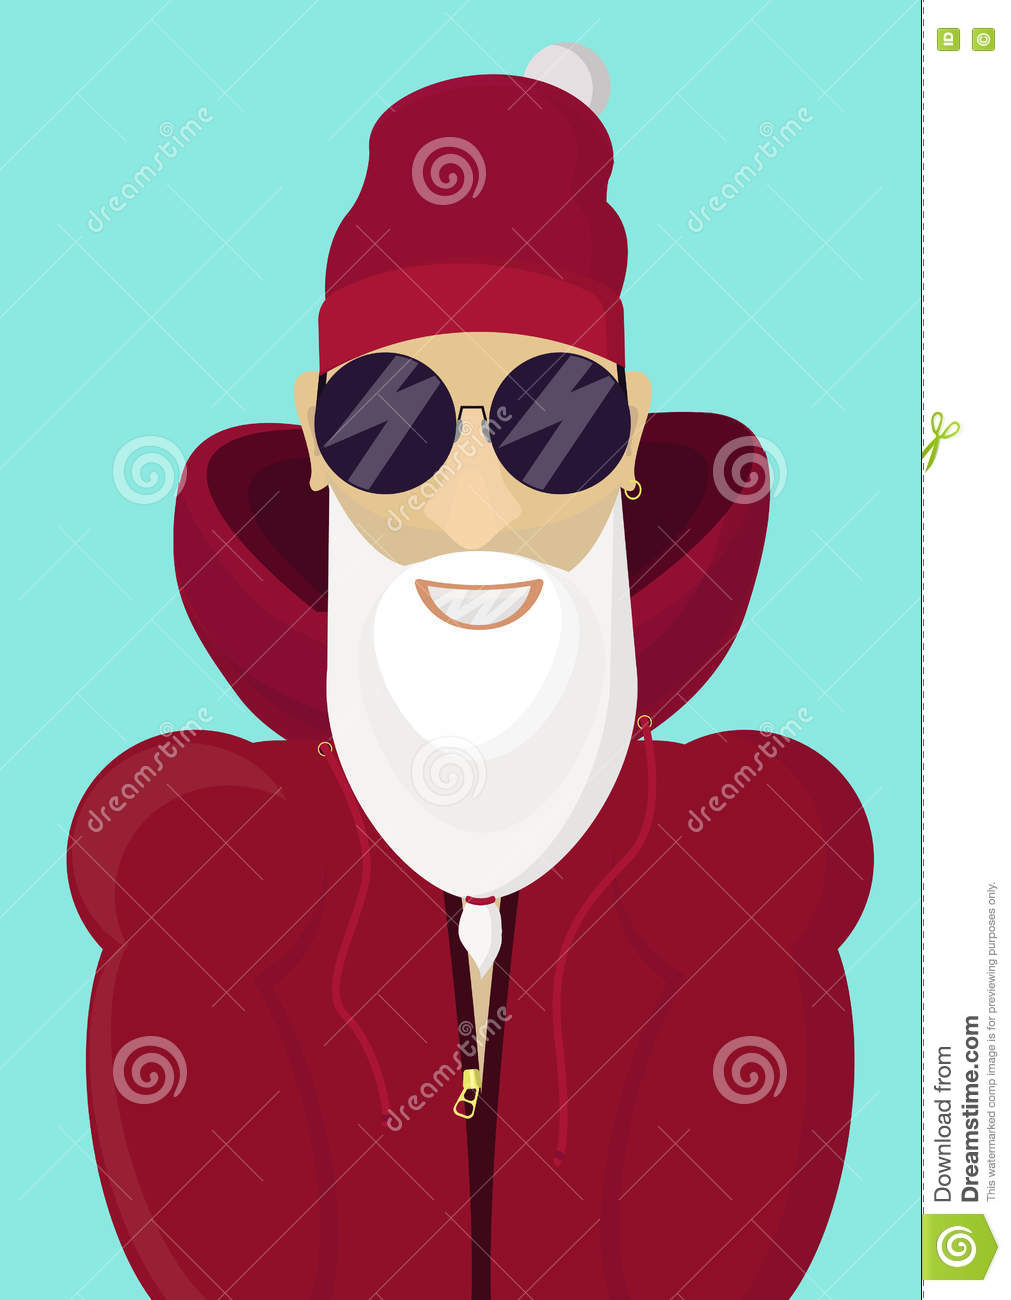 fc0f1c52211 Hipster Trendy Santa Claus With Stylish Beard And Hip Sunglasses ...